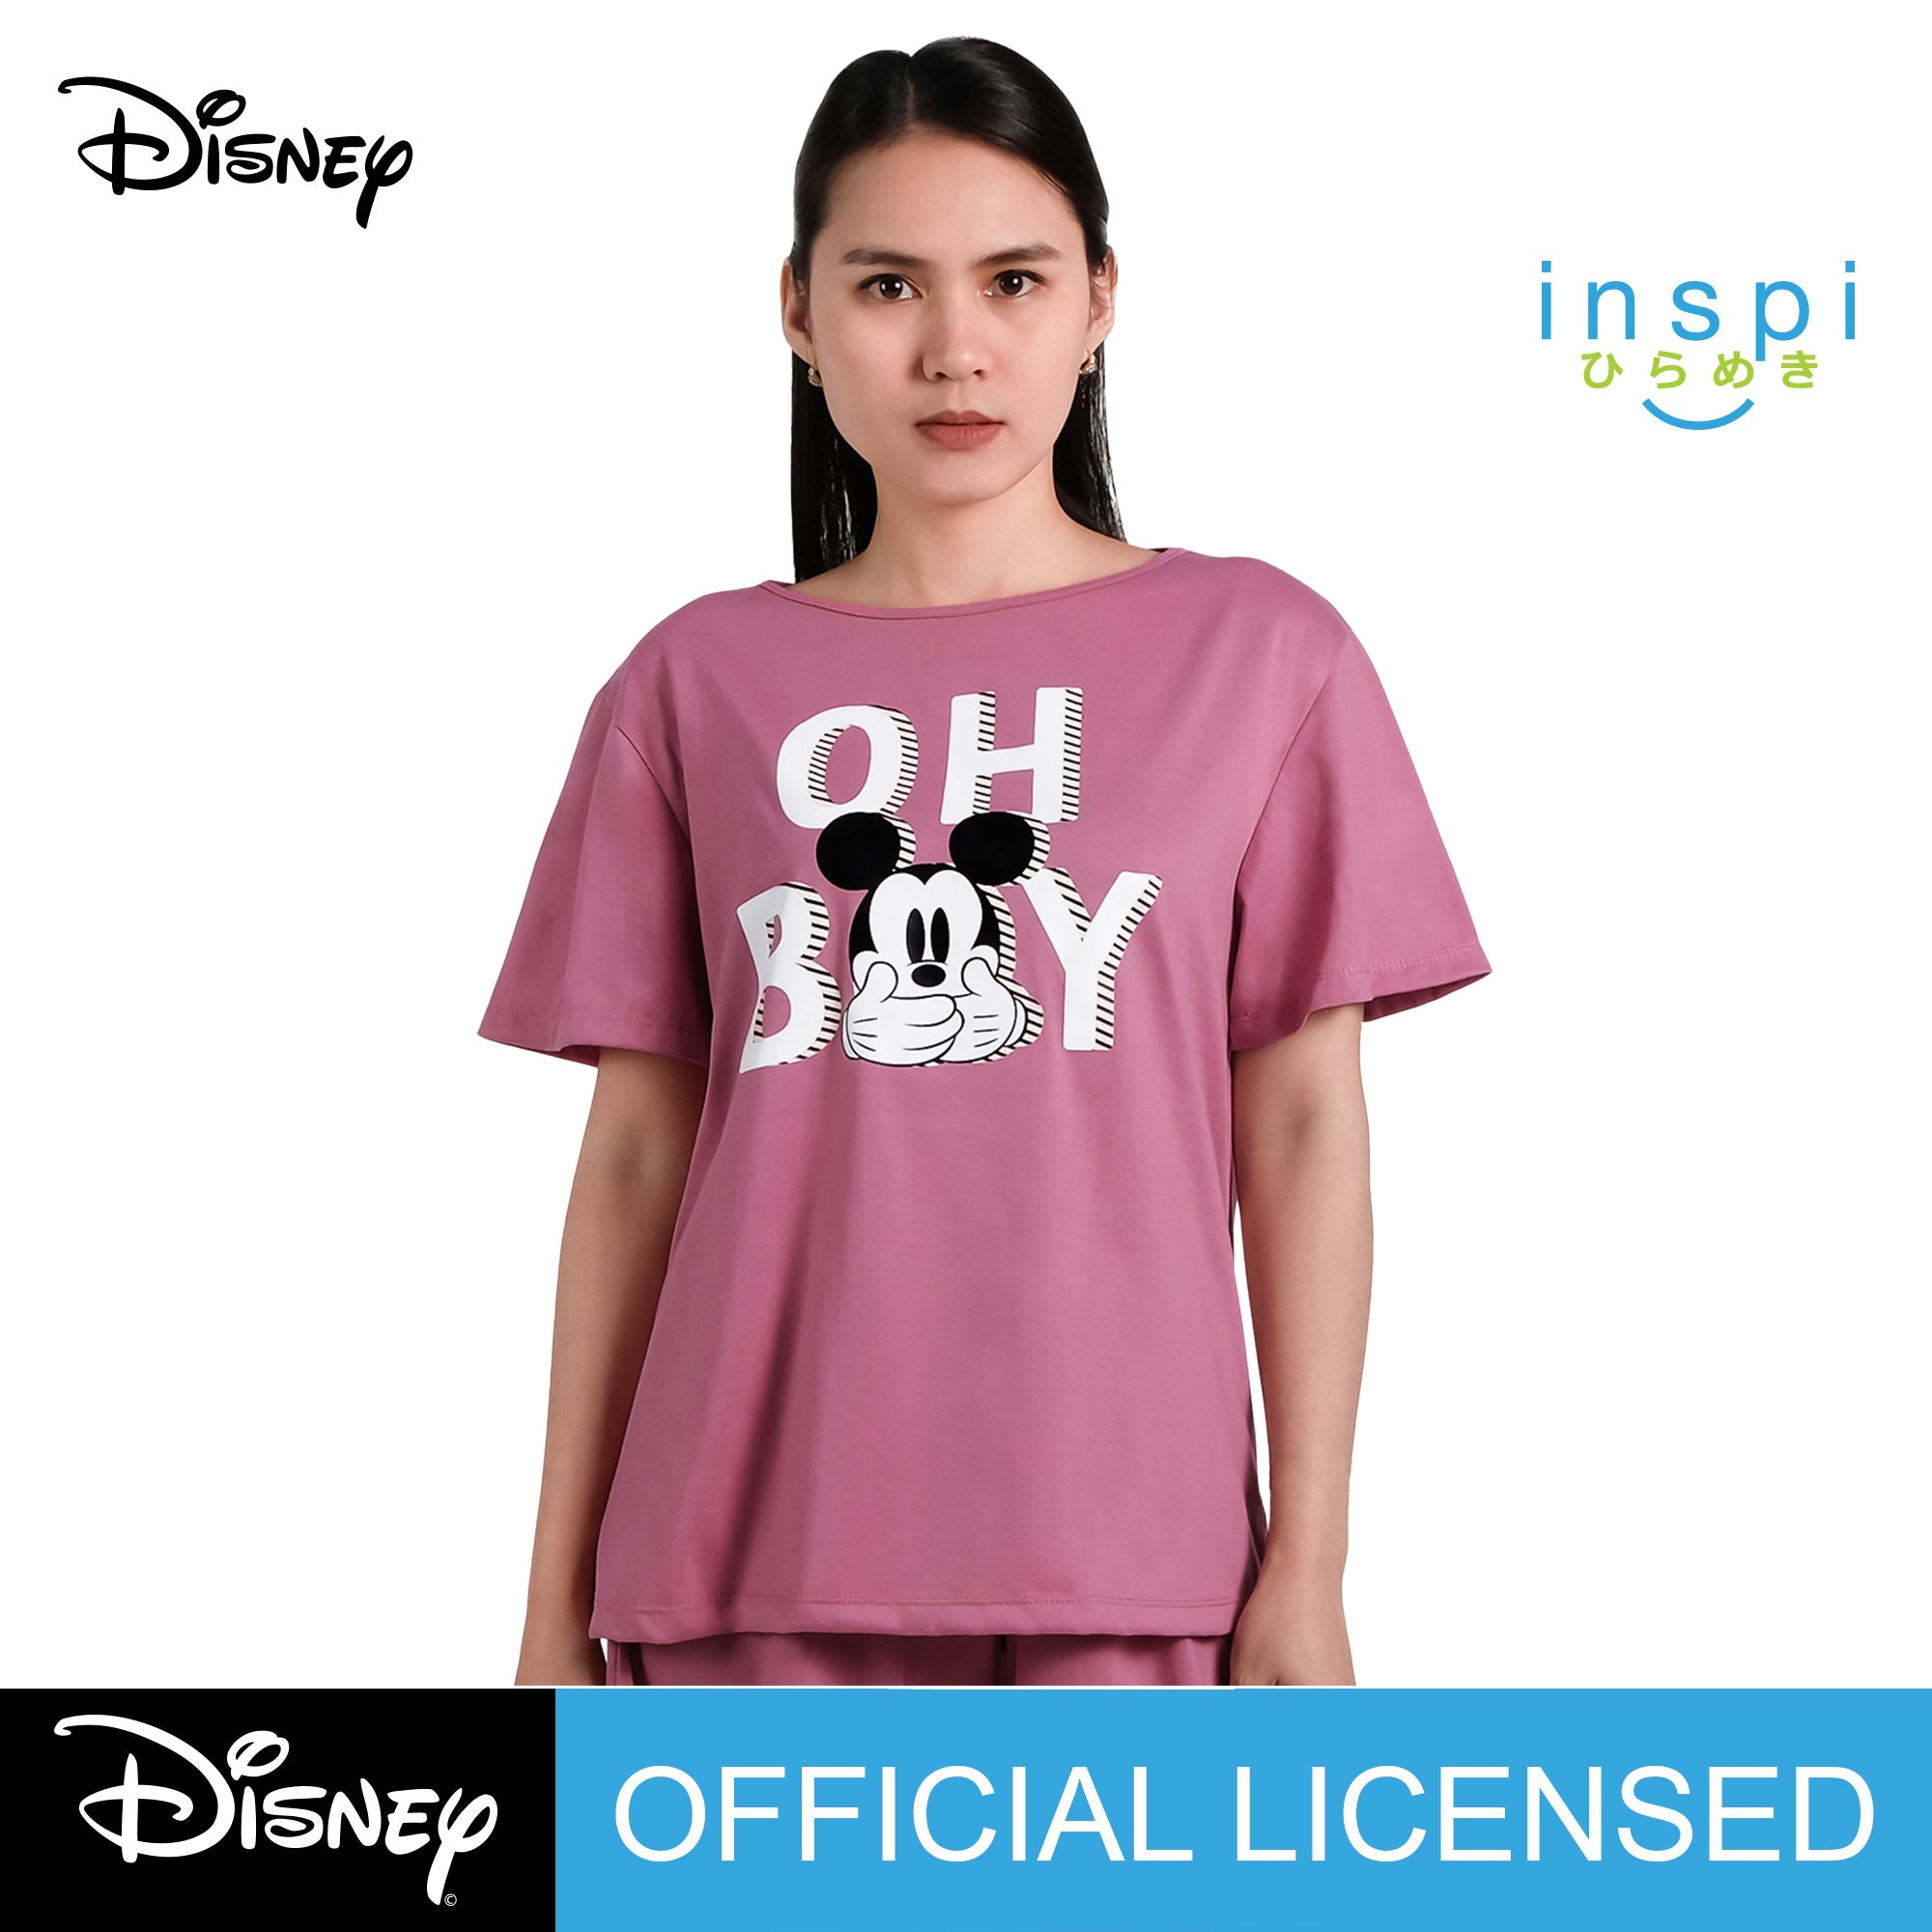 Disney Mickey Mouse Oh Boy Ladies Comfies Shirt in Old Rose Coords pambahay loungewear